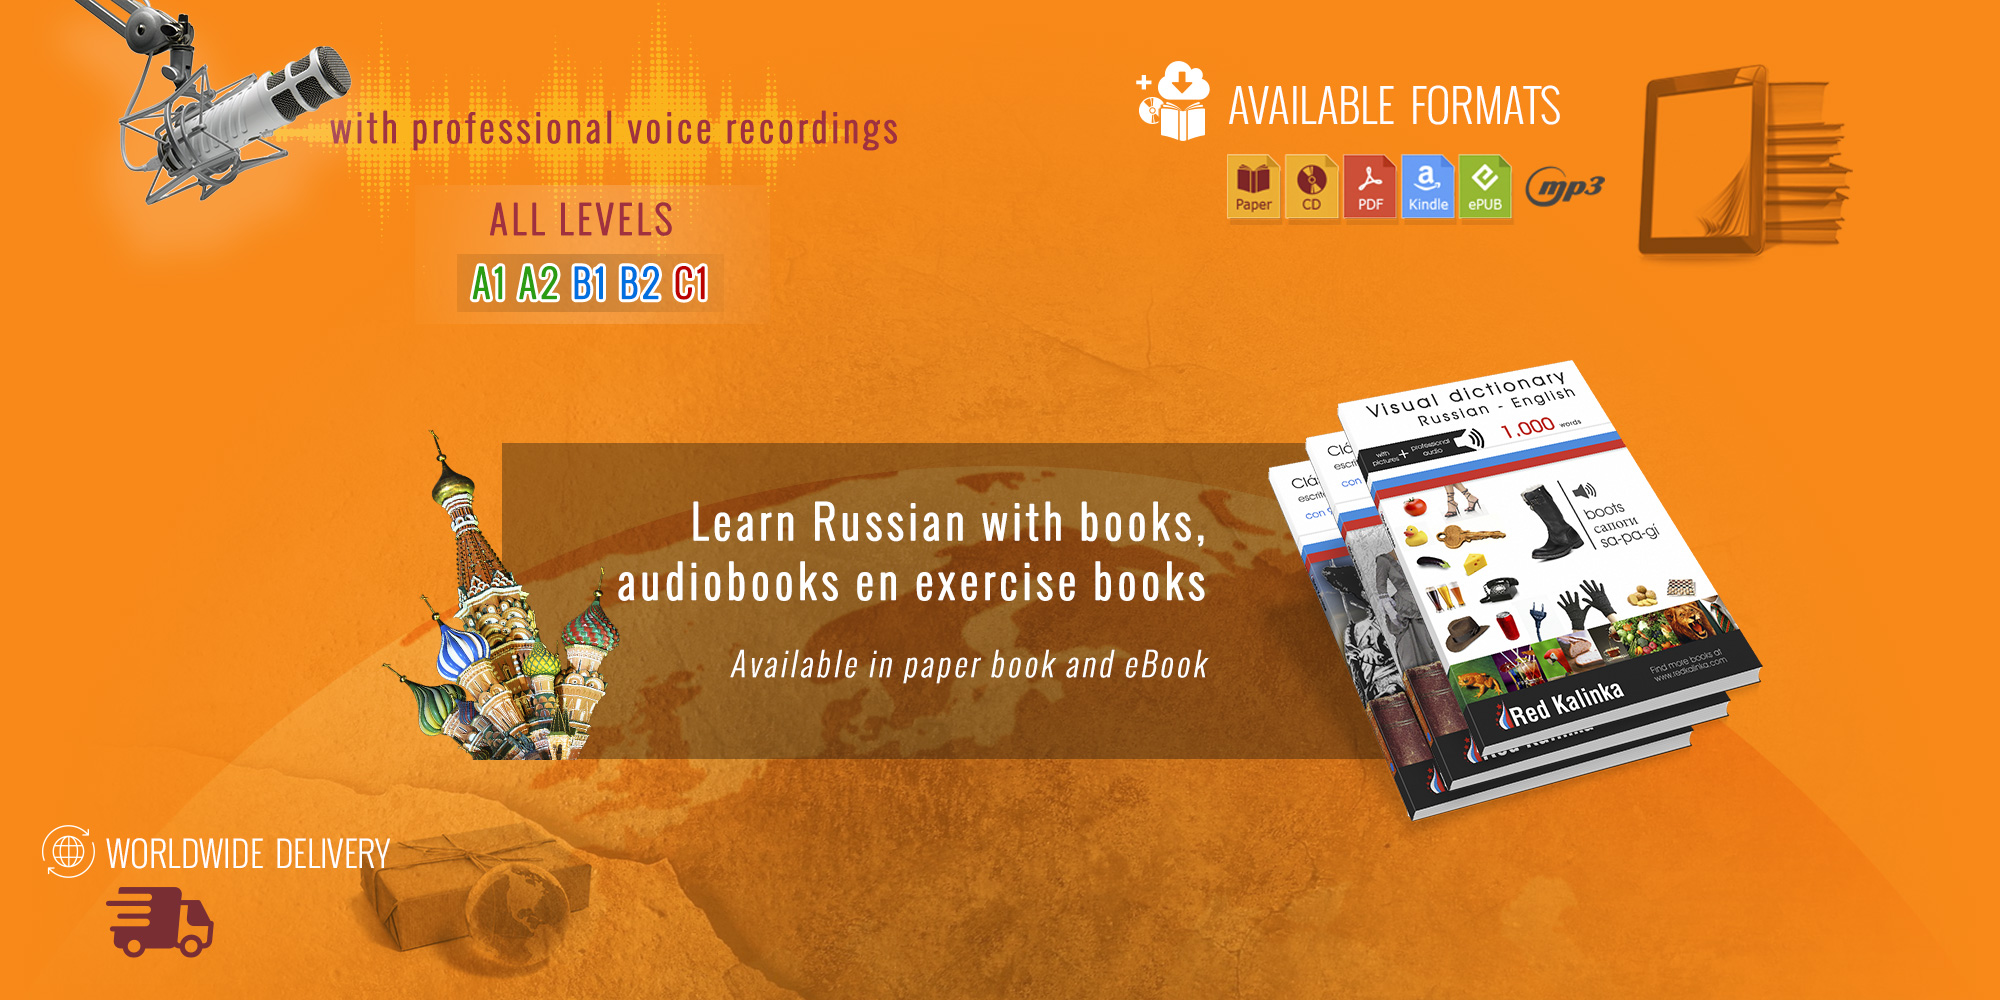 Books with audio in Russian